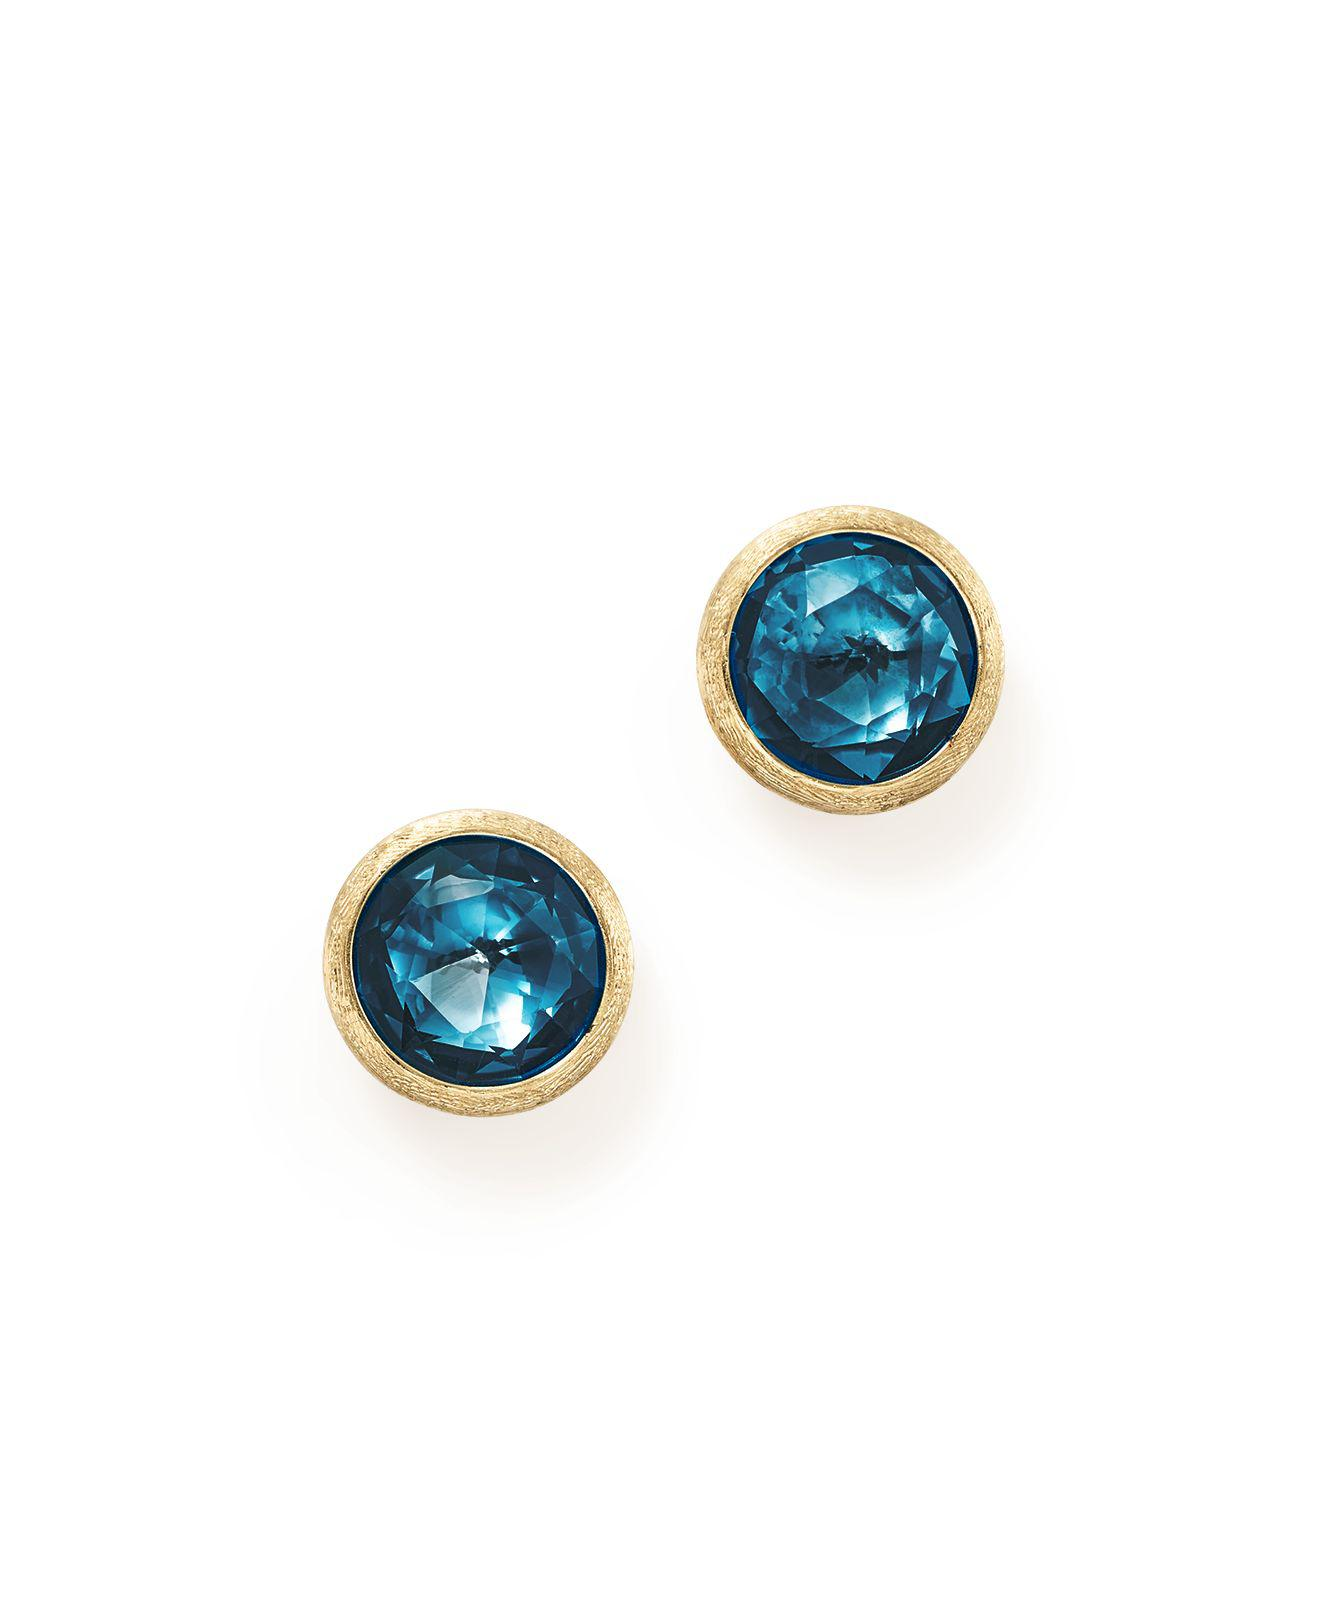 gold jewellery stud white earrings topaz image blue gemstone oval